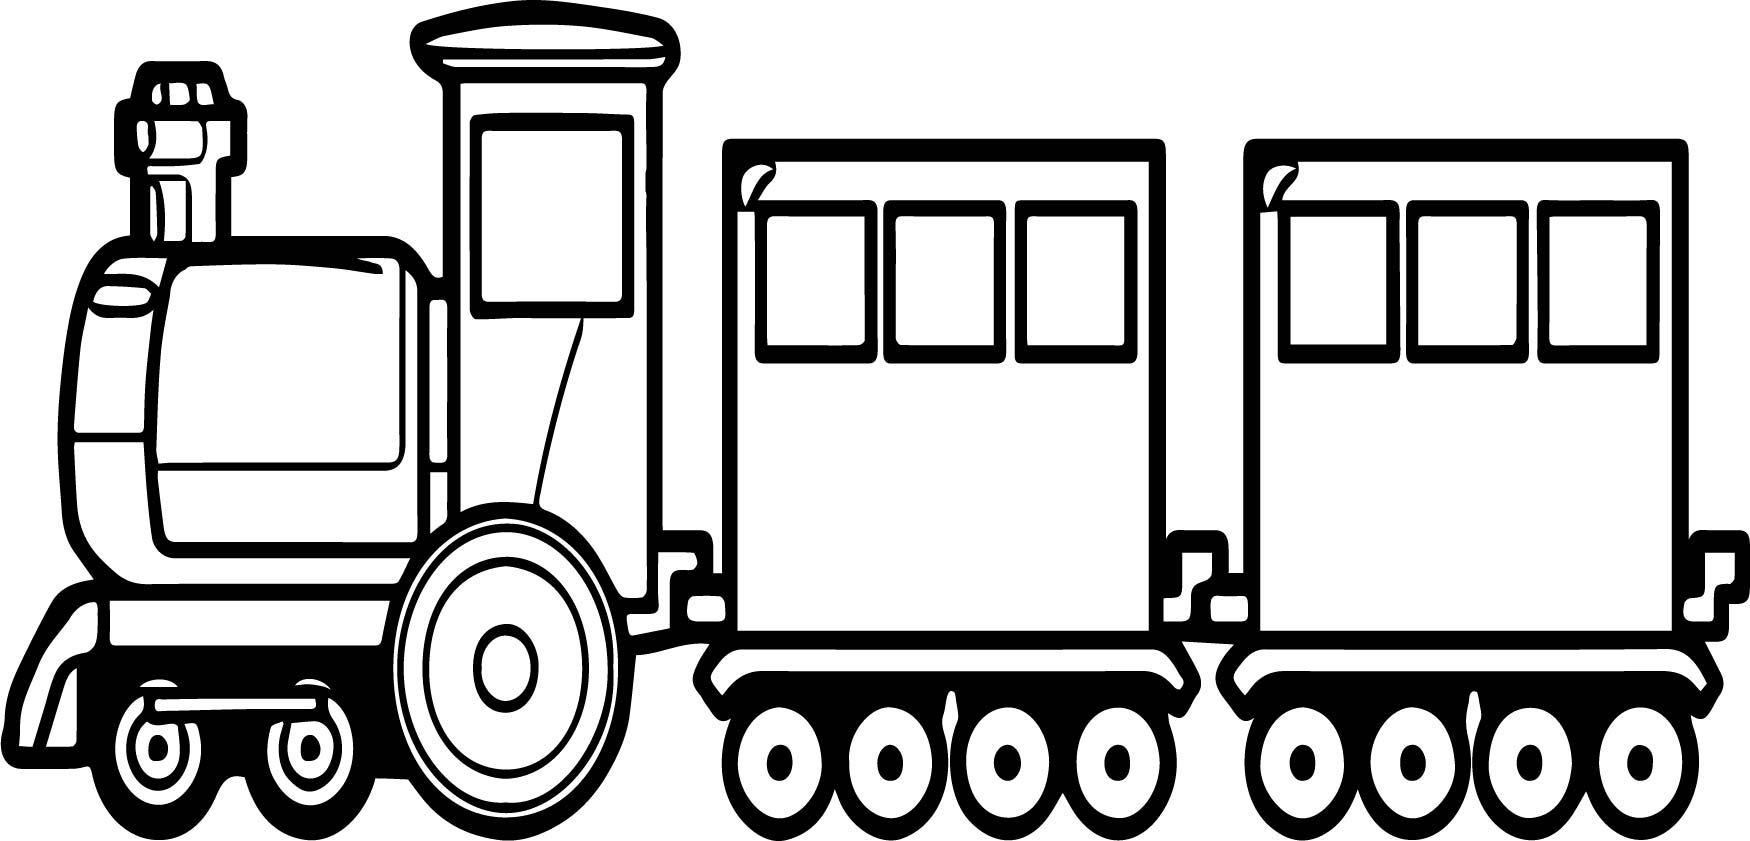 go train coloring page - Train Coloring Pages